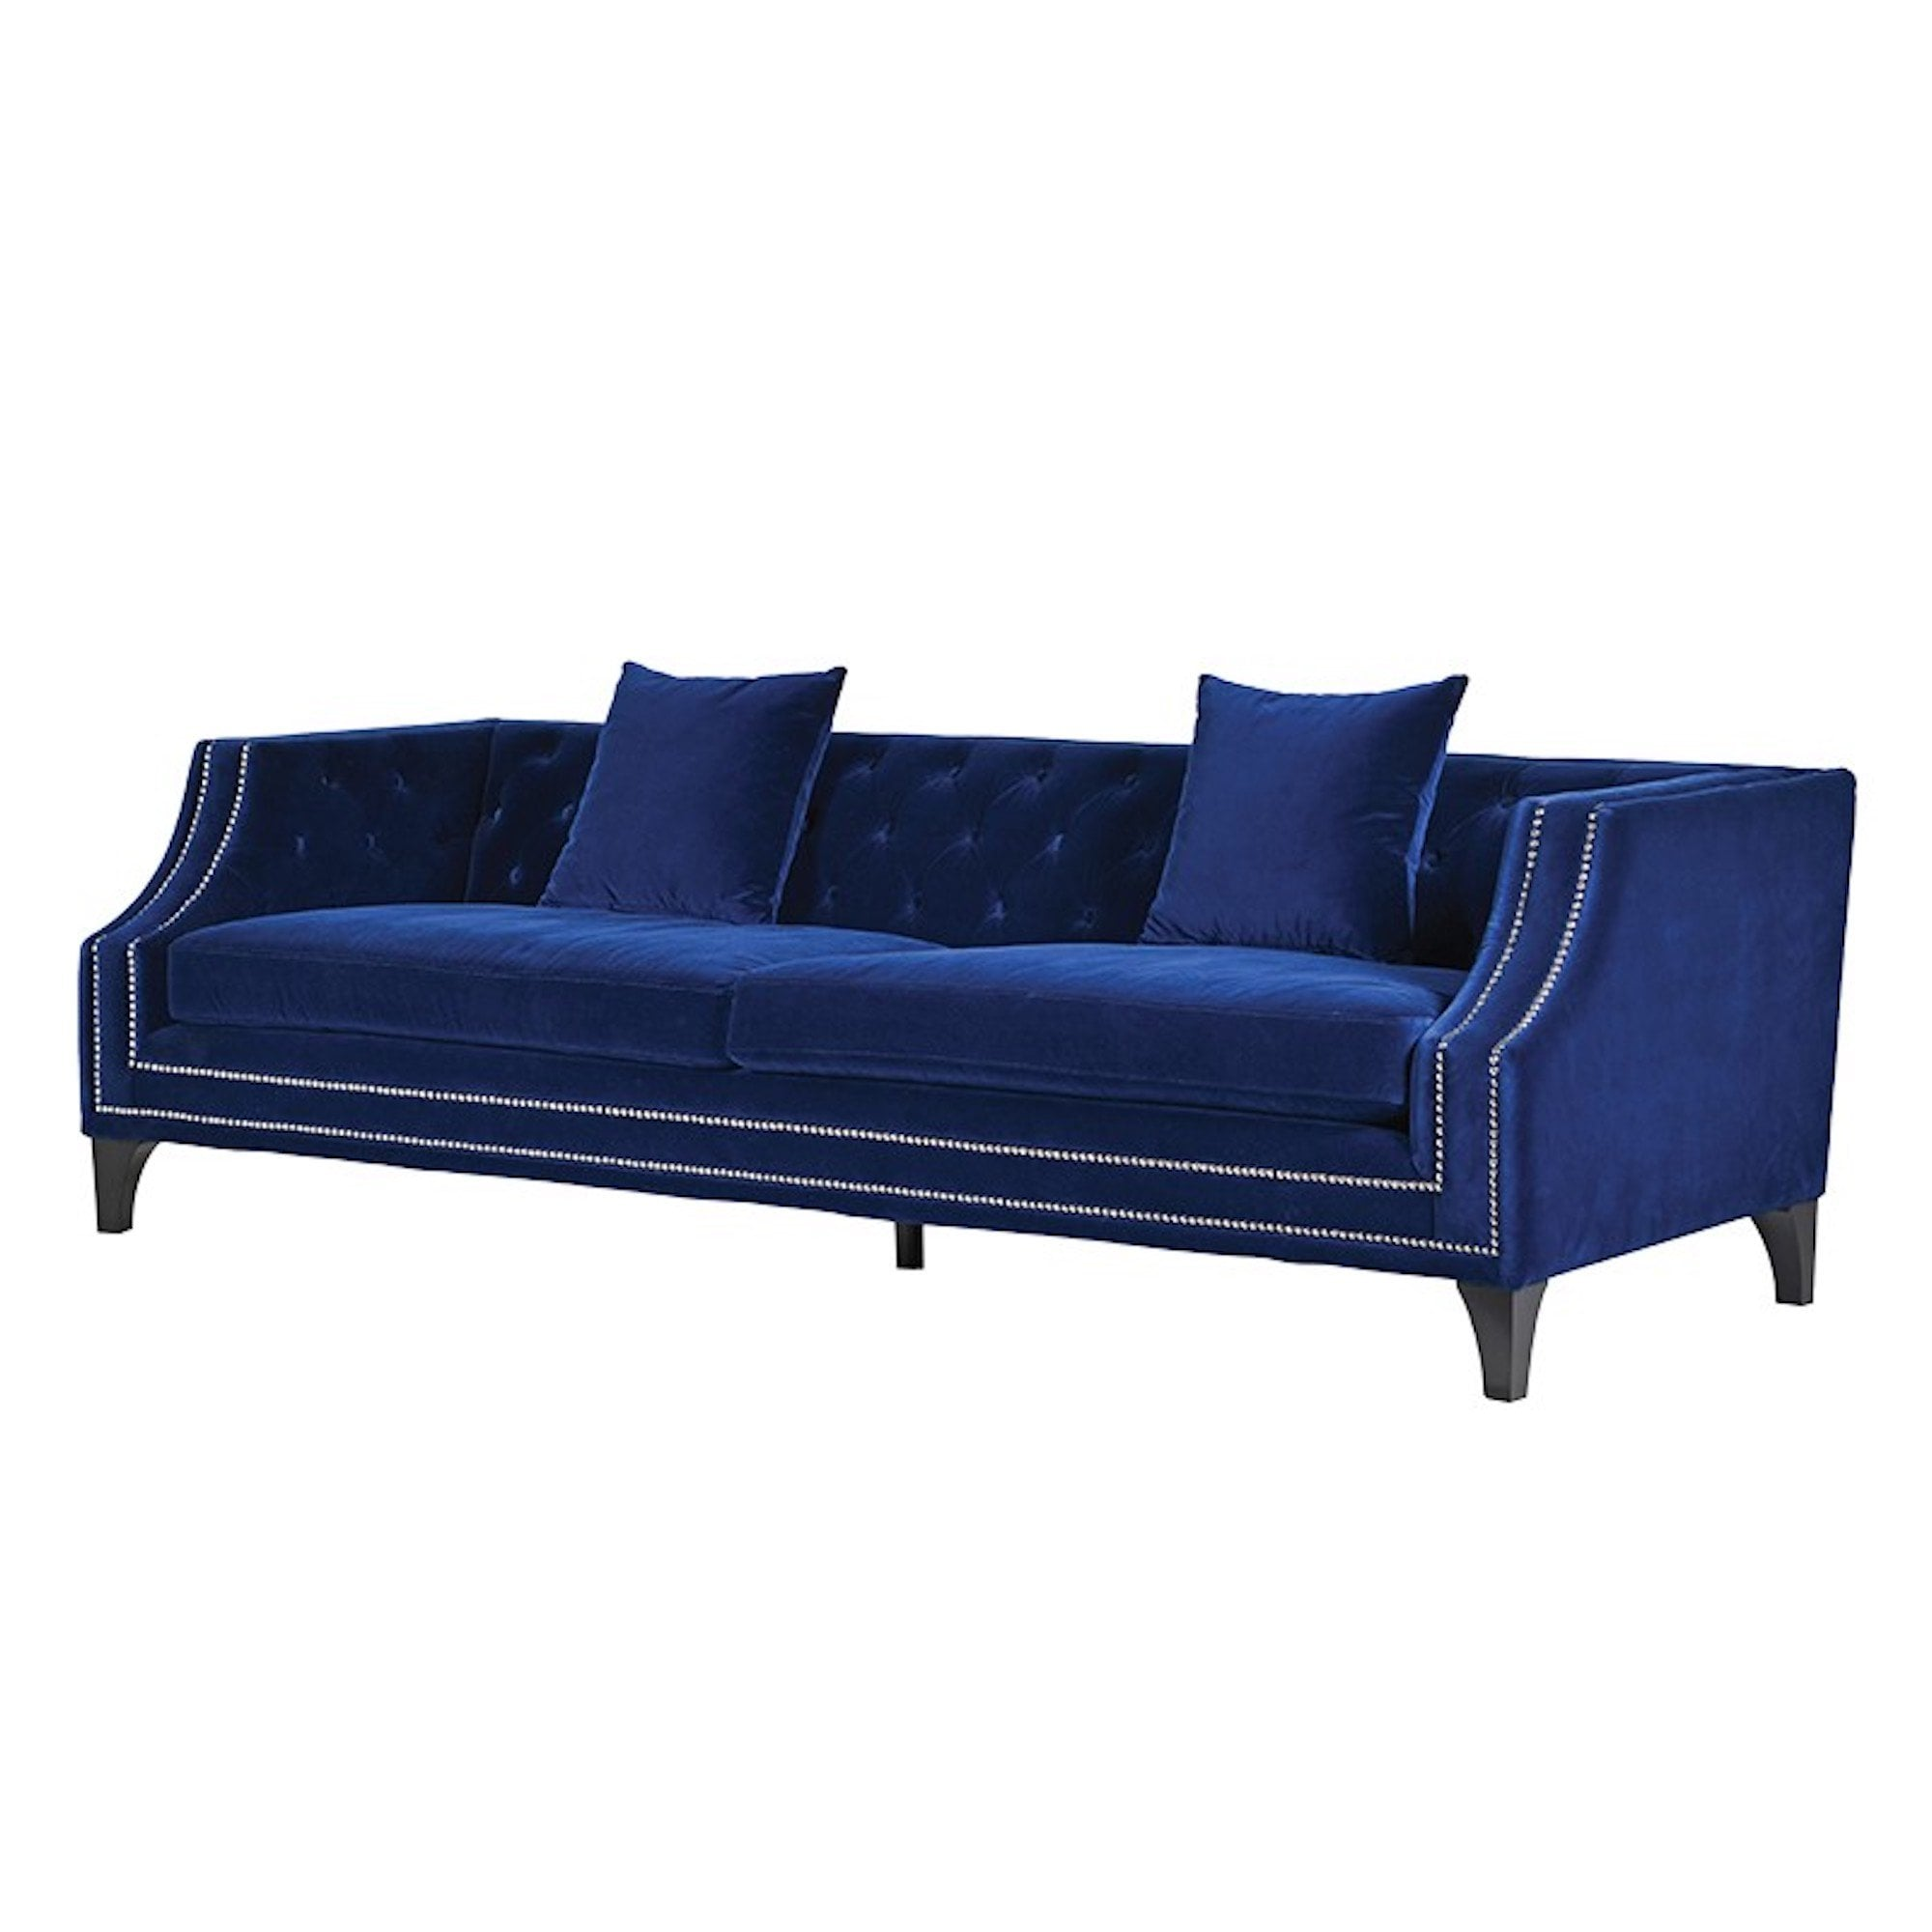 Admirable Heath Blue Velvet Sofa With Silver Studs Alphanode Cool Chair Designs And Ideas Alphanodeonline